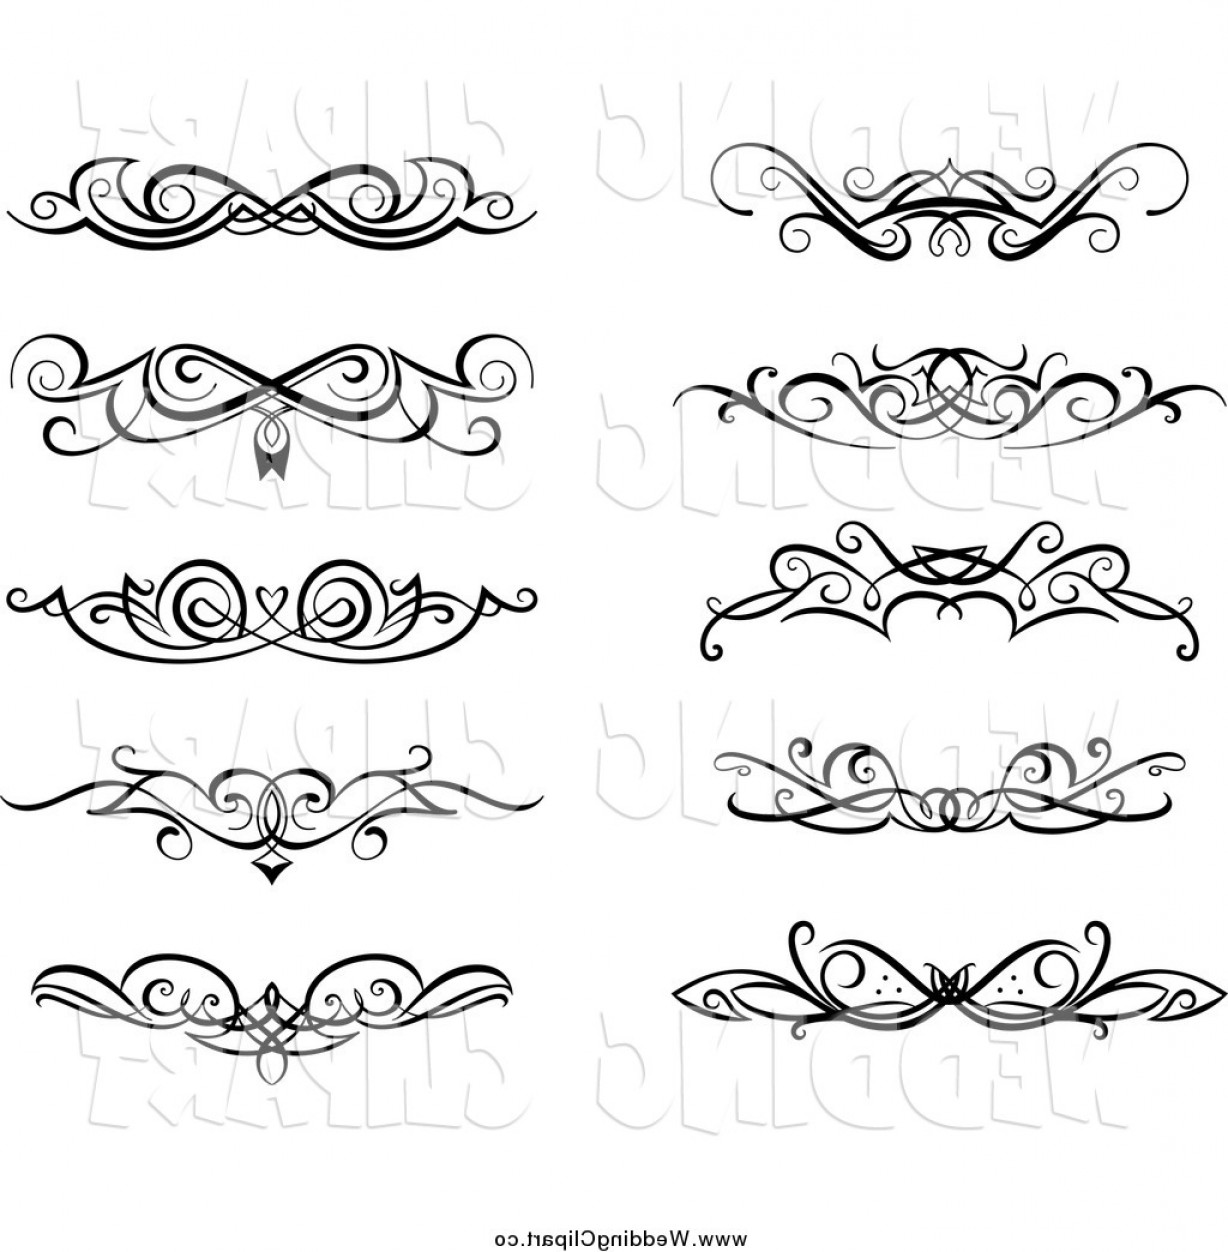 Wedding clipart vector images vector freeuse library Vector Marriage Clipart Of Black And White Swirl Wedding ... vector freeuse library